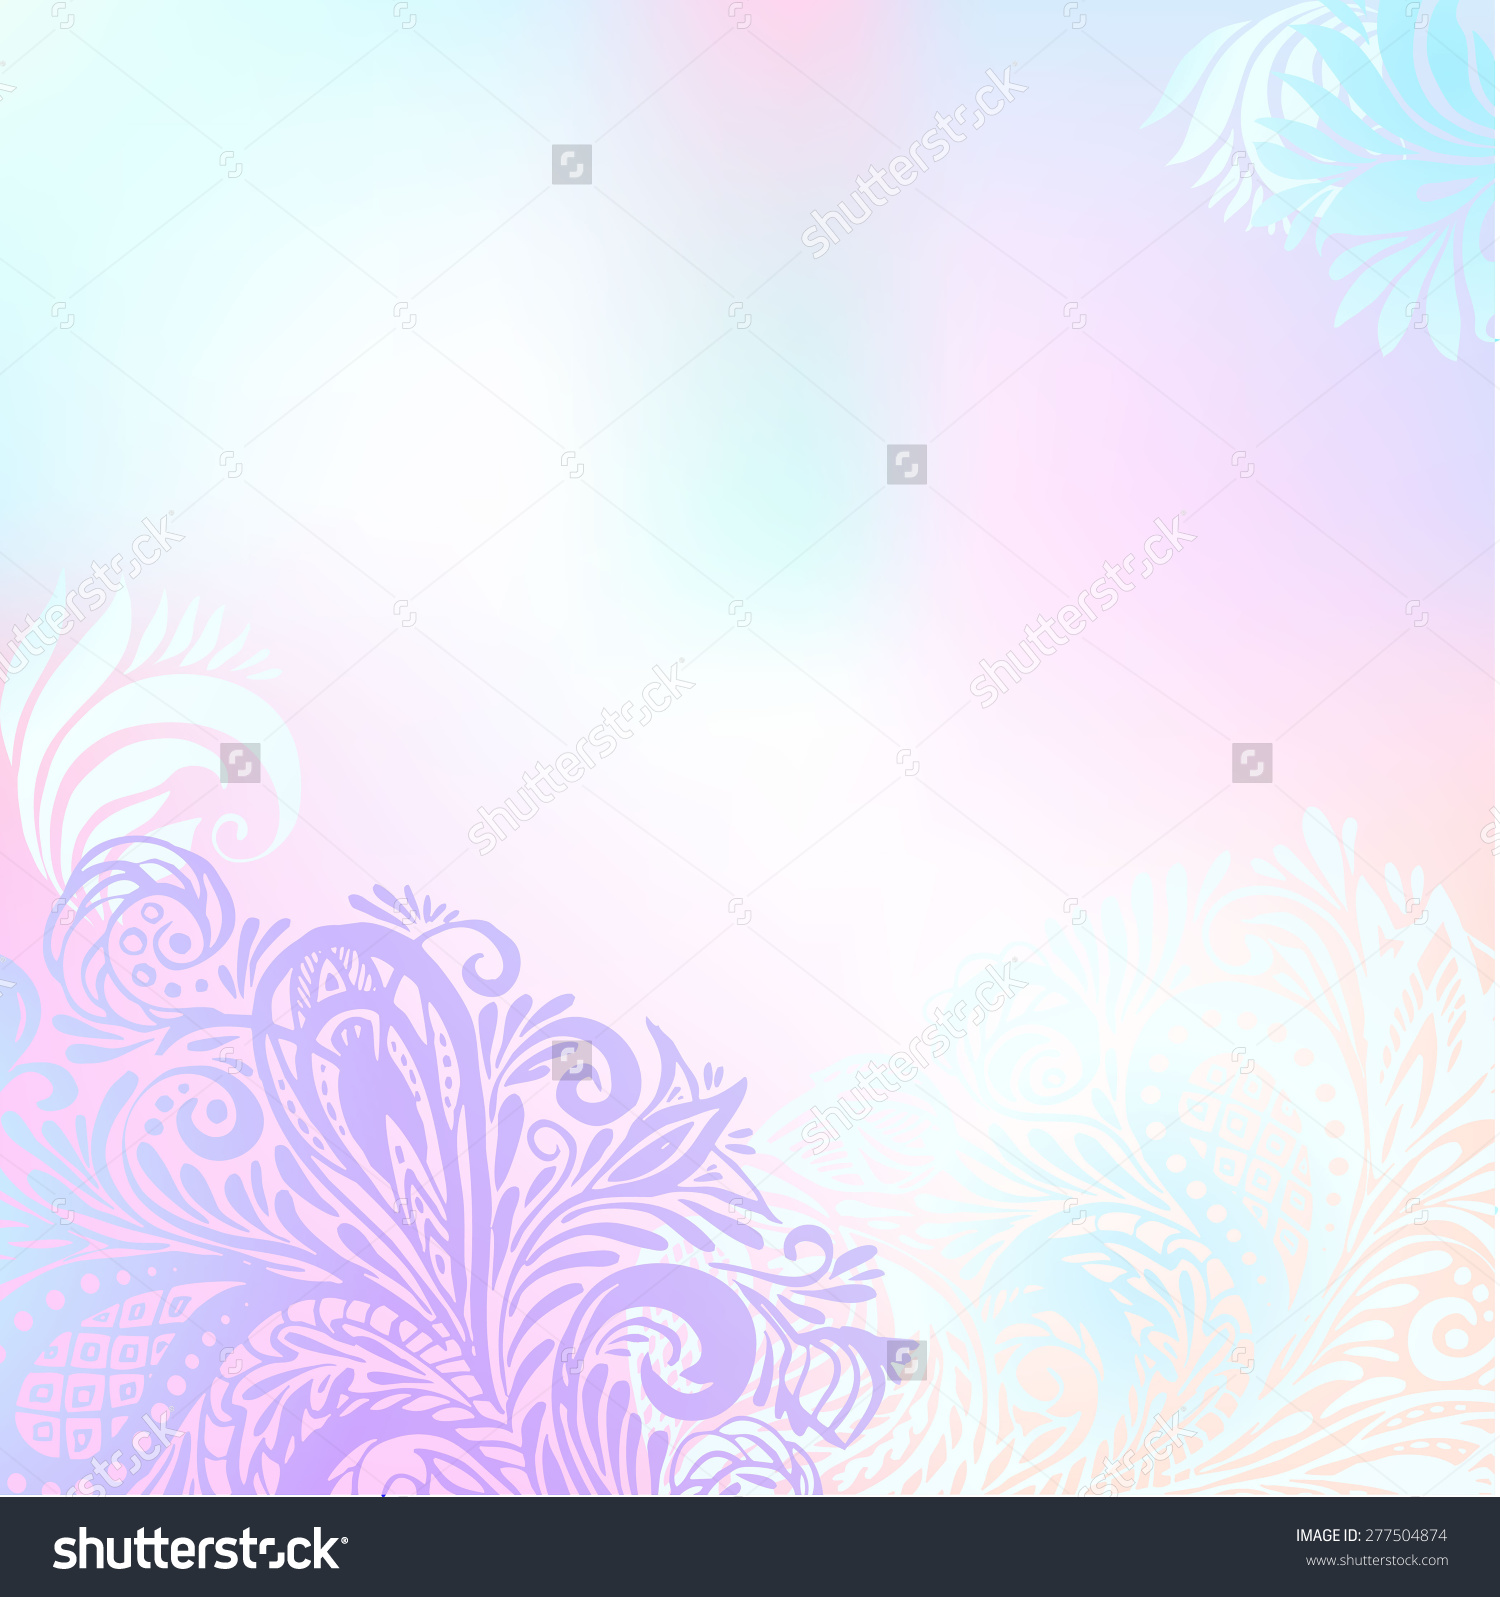 Free Download Floral Wedding Background Blank Greeting Cards